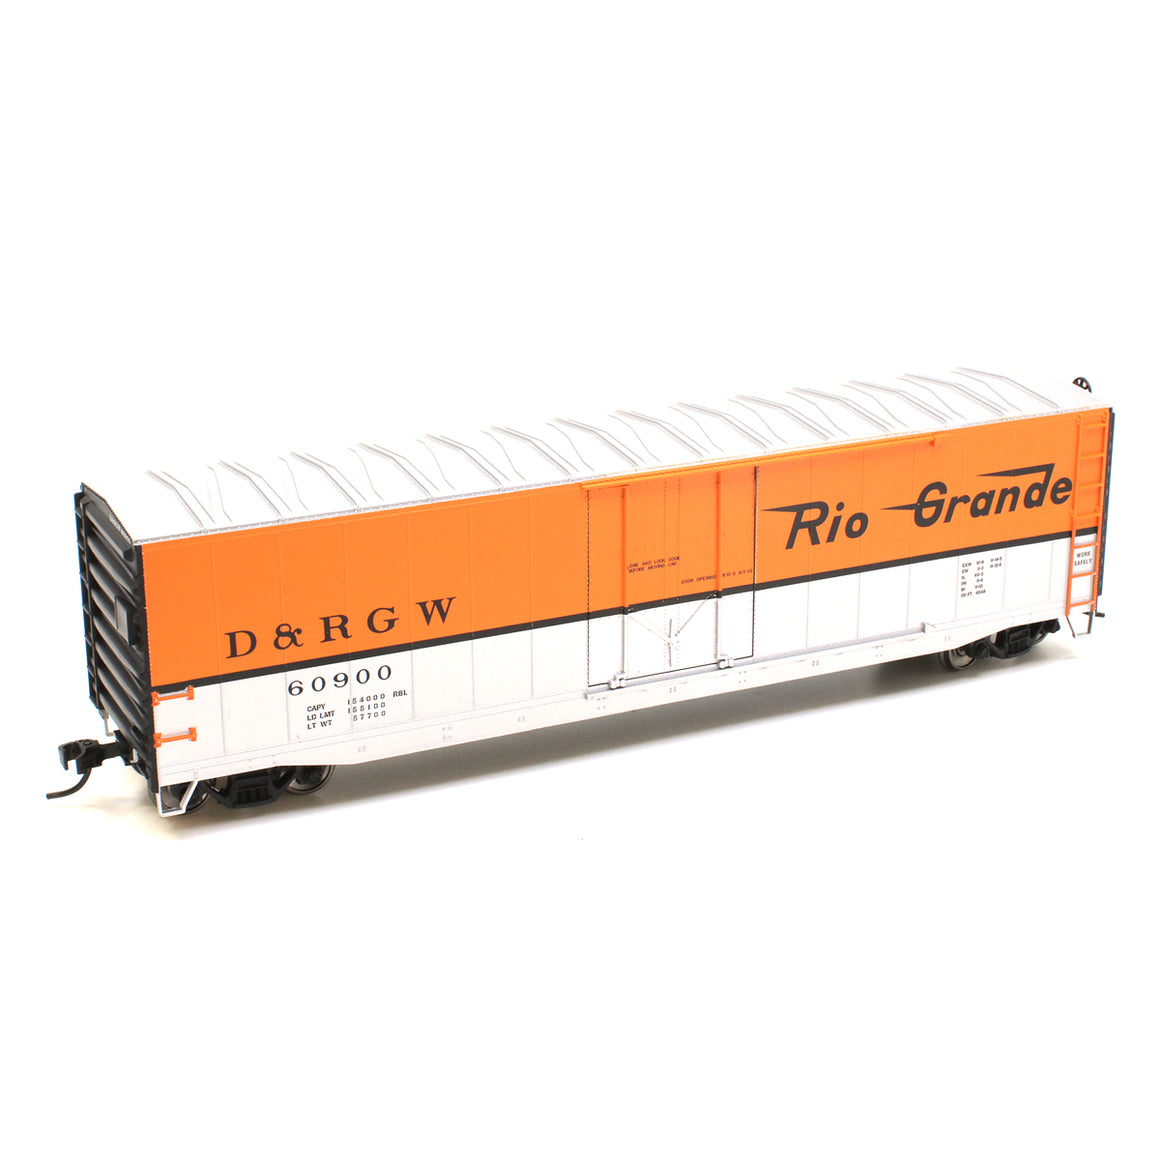 HO Scale: 50' Sliding Door Boxcar - D&RGW